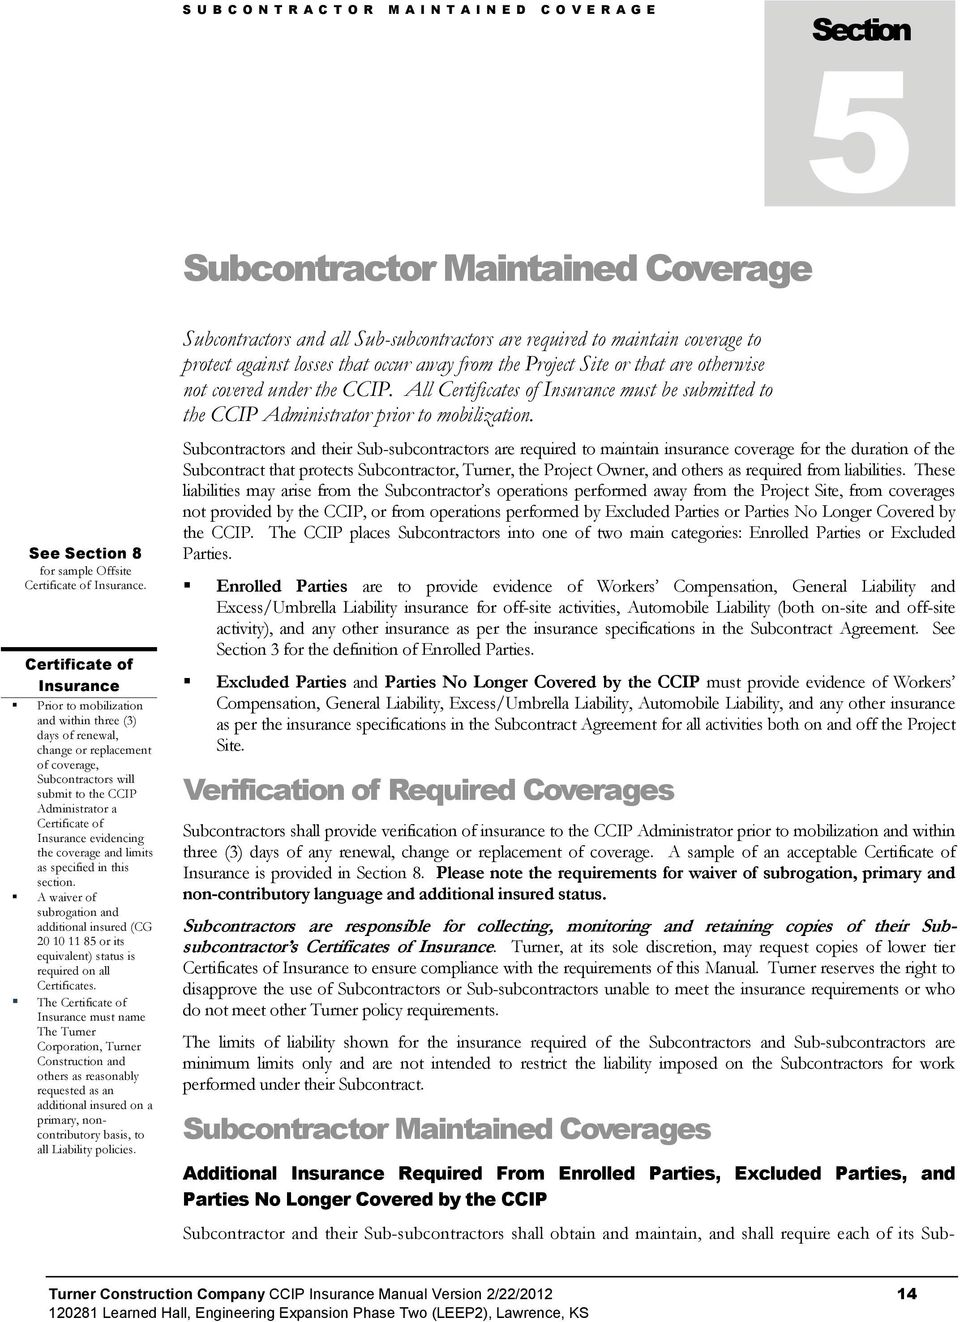 Ccip insurance manual turner construction company pdf evidencing the coverage and limits as specified in this section a waiver of subrogation and 16 subcontractor maintai n e d c o v e r a g e platinumwayz